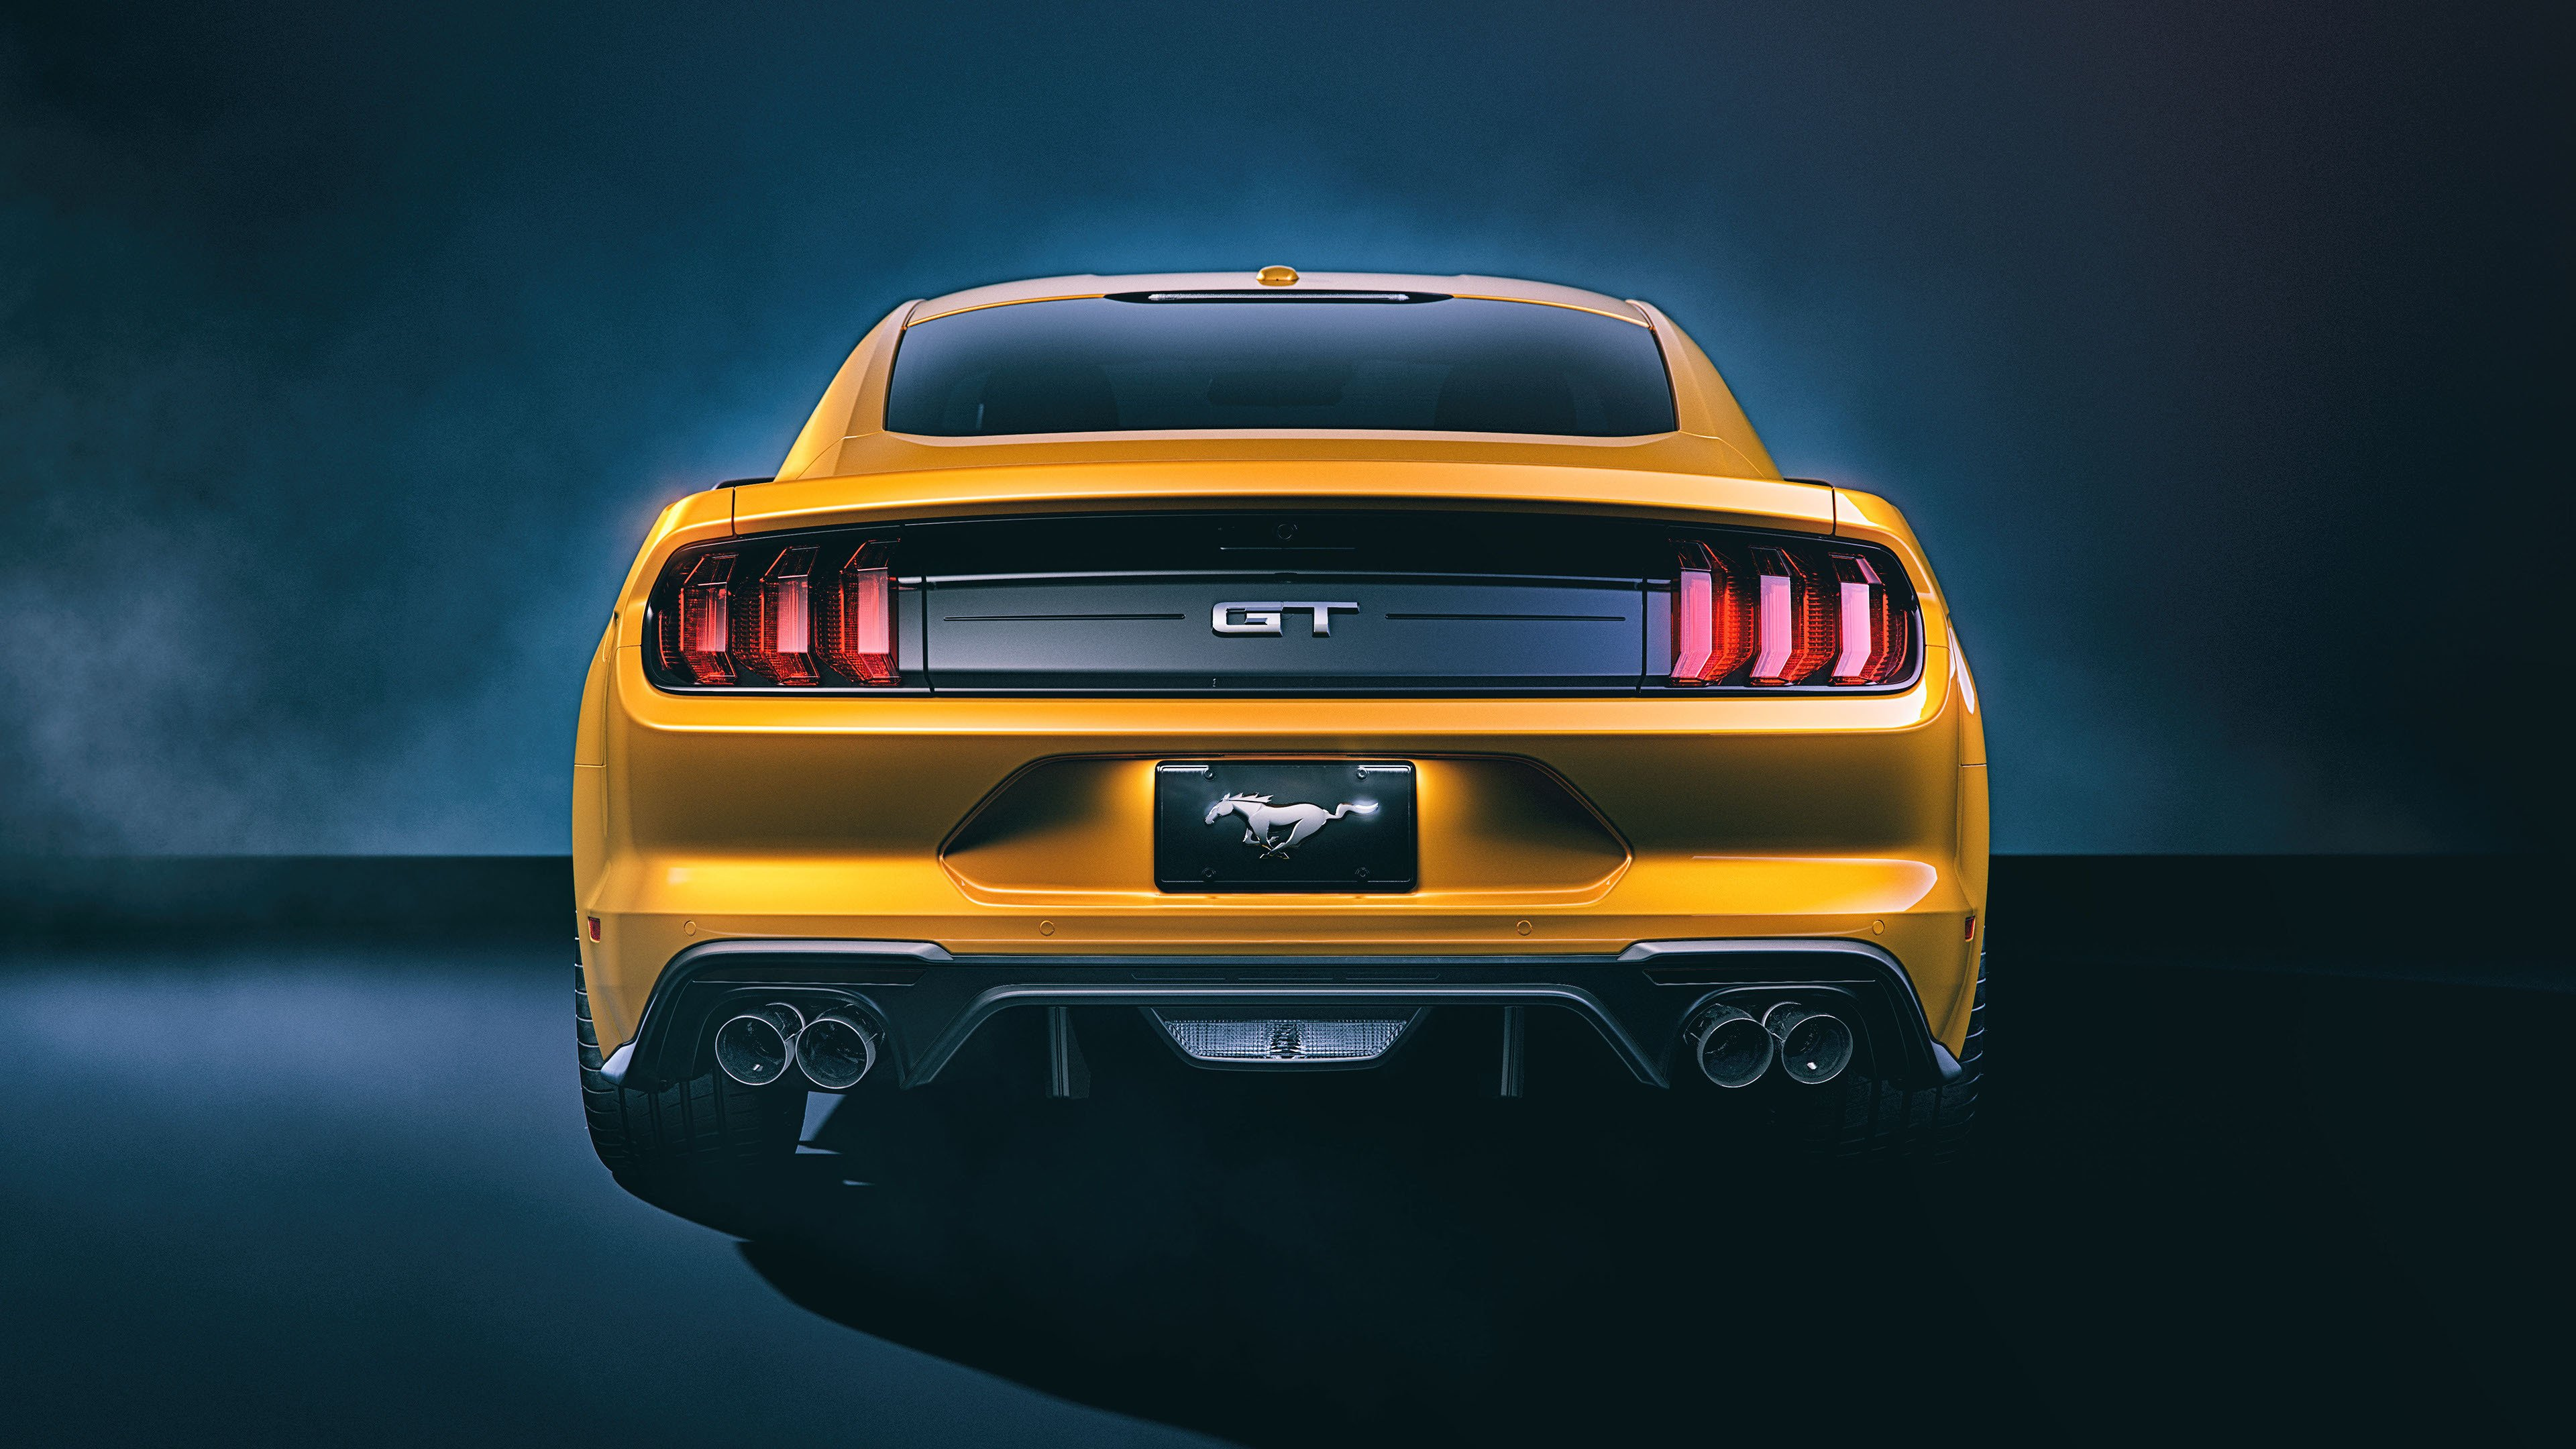 Ford Mustang Gt 4k Wallpapers Wallpaper Cave